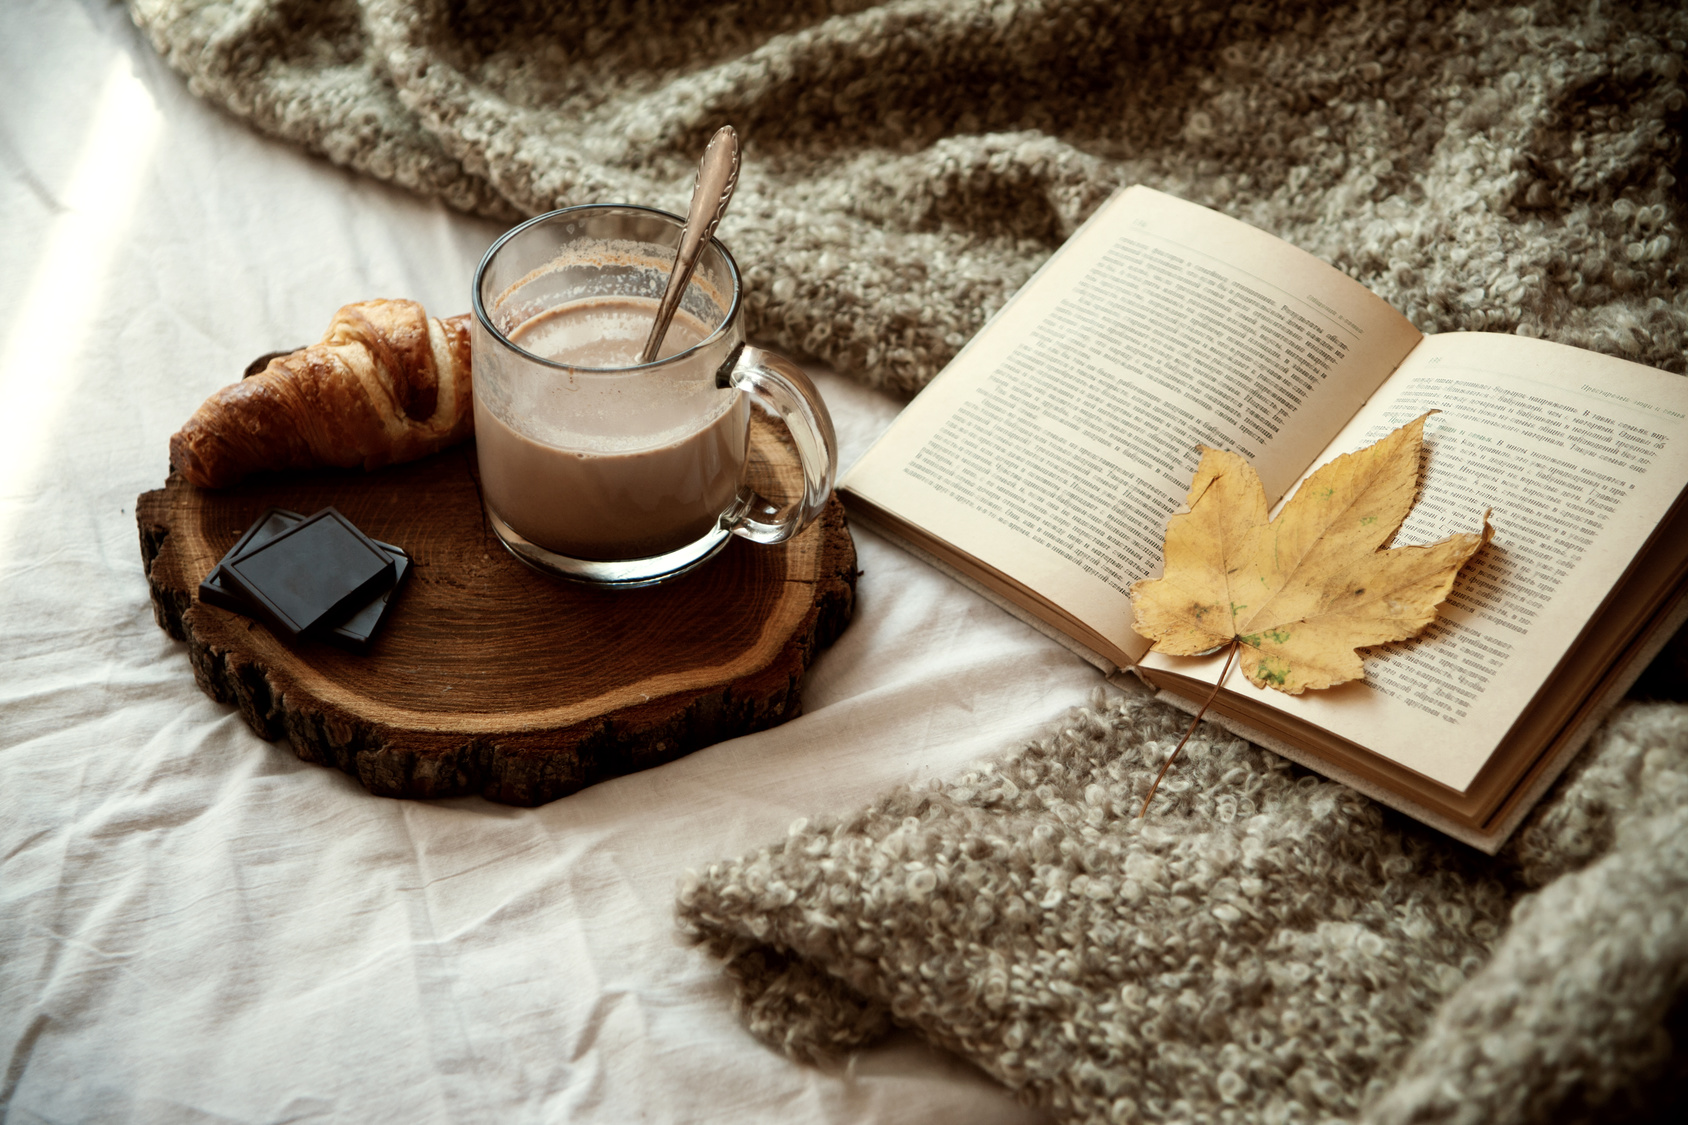 mug of cocoa stands on a wooden tray, next is a croissant with chocolate, a book with autumn leaves on the bed